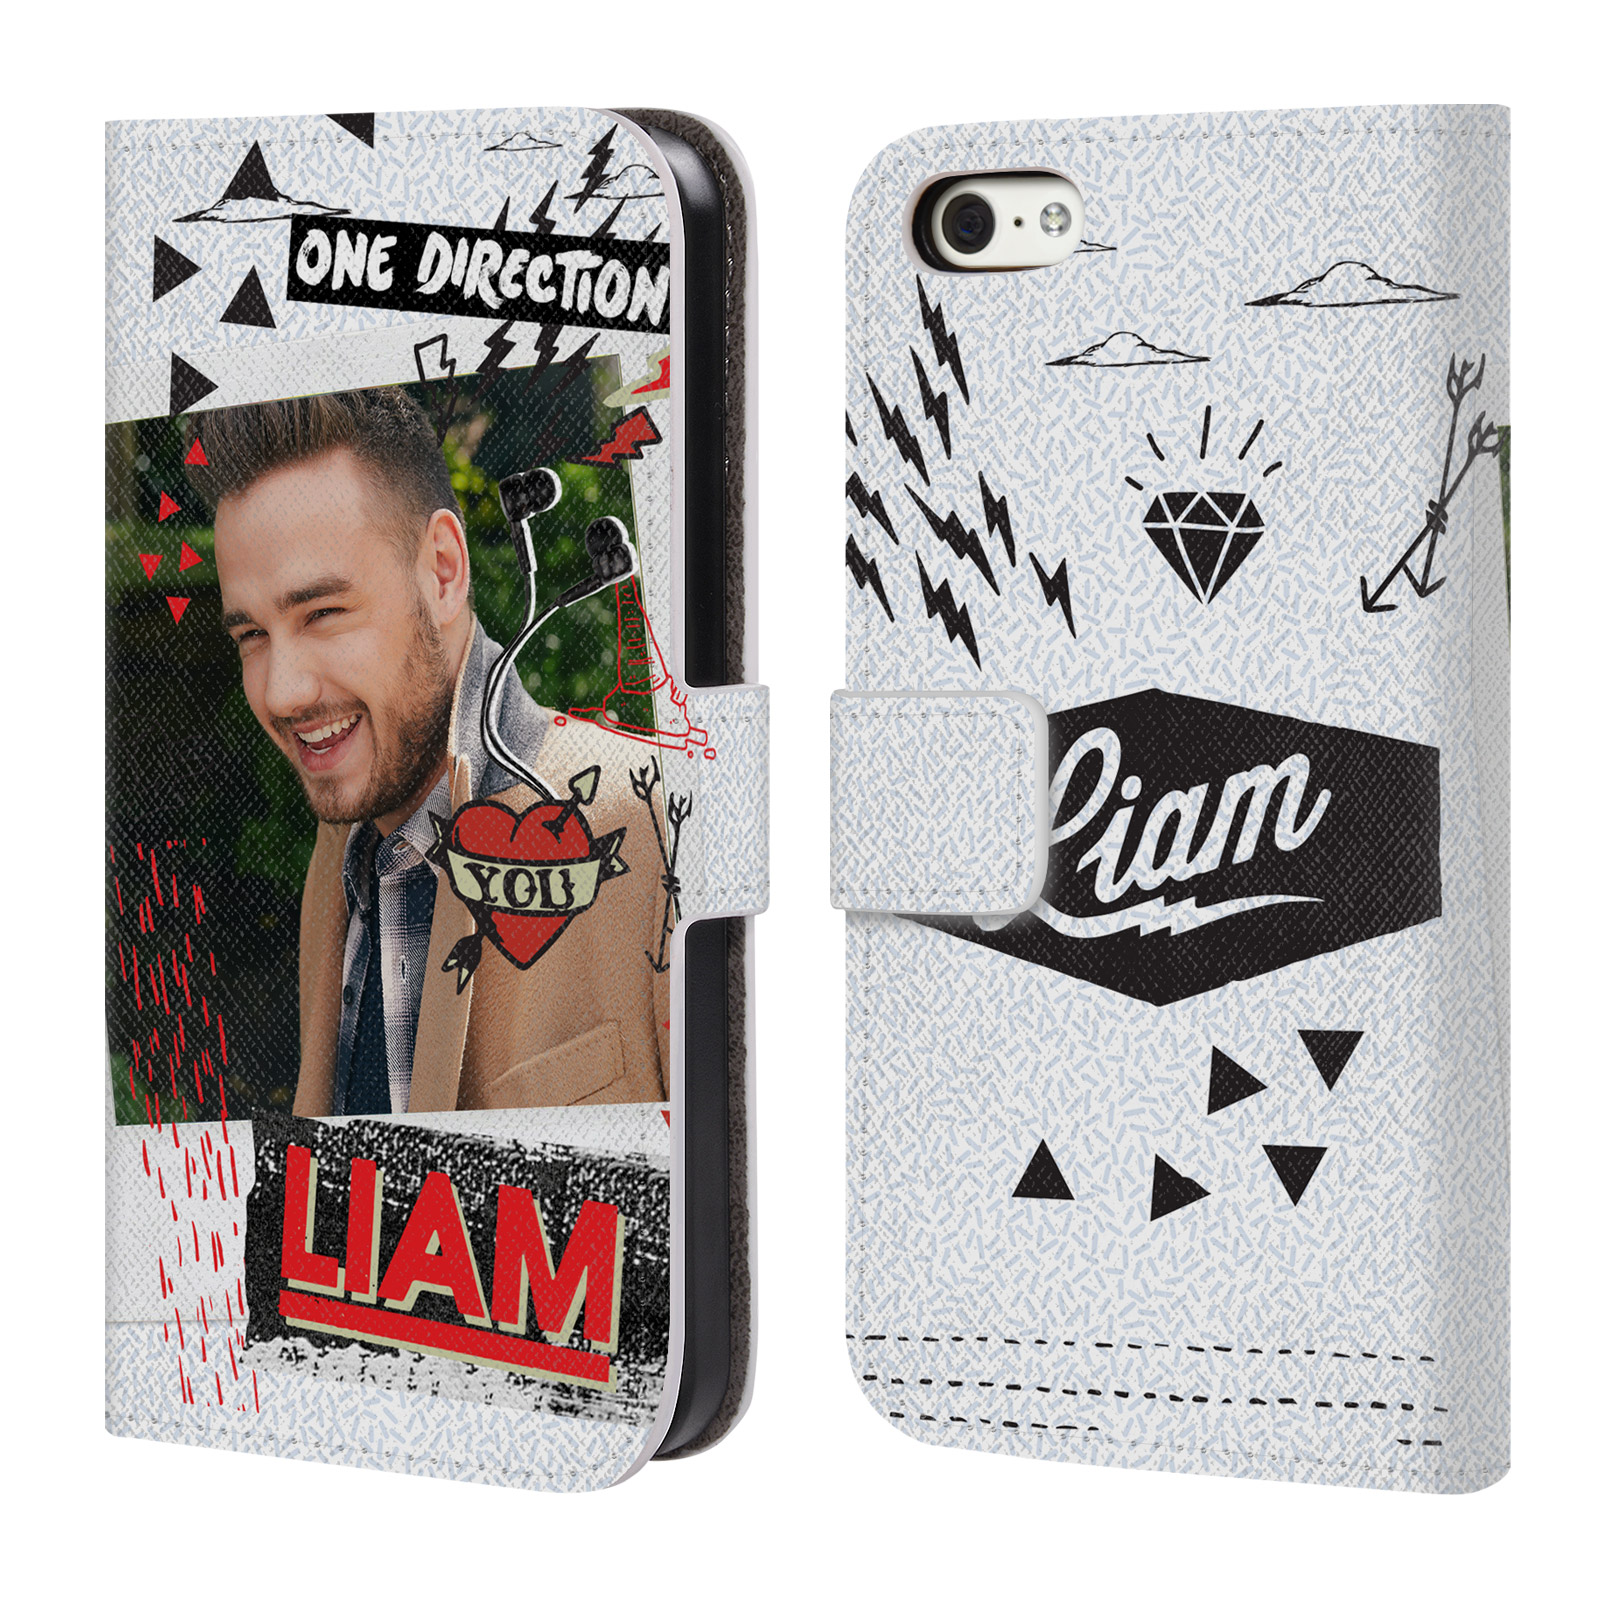 OFFICIAL ONE DIRECTION MIDNIGHT MEMORIES SHOTS LIAM LEATHER BOOK WALLET CASE COVER FOR APPLE IPHONE PHONES